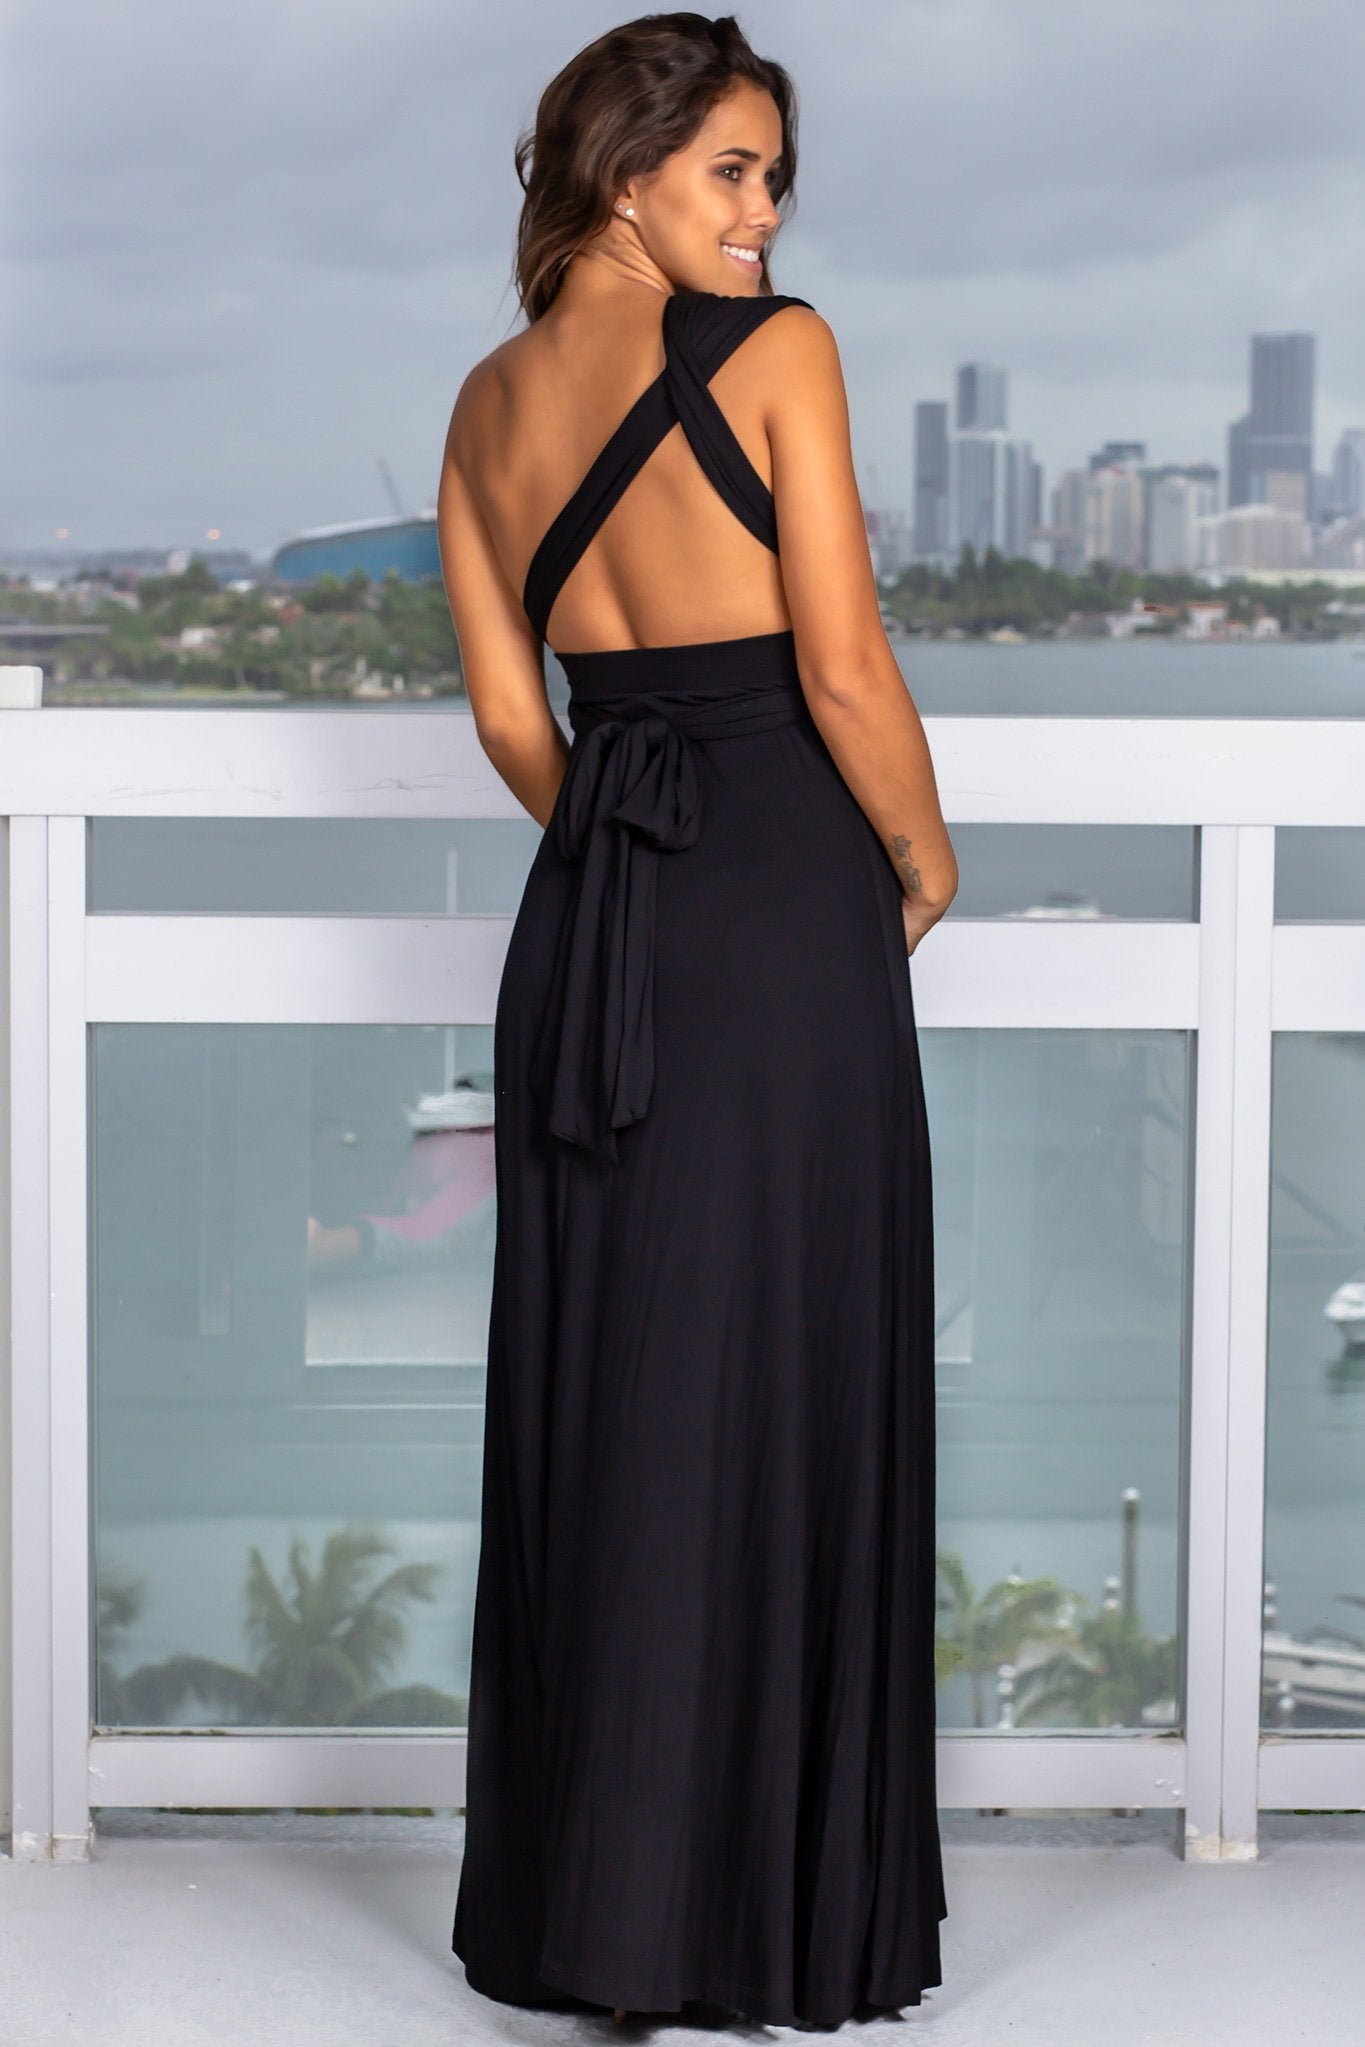 Black Tie Maxi Dress With Open Back Saved By The Dress Saved By The Dress